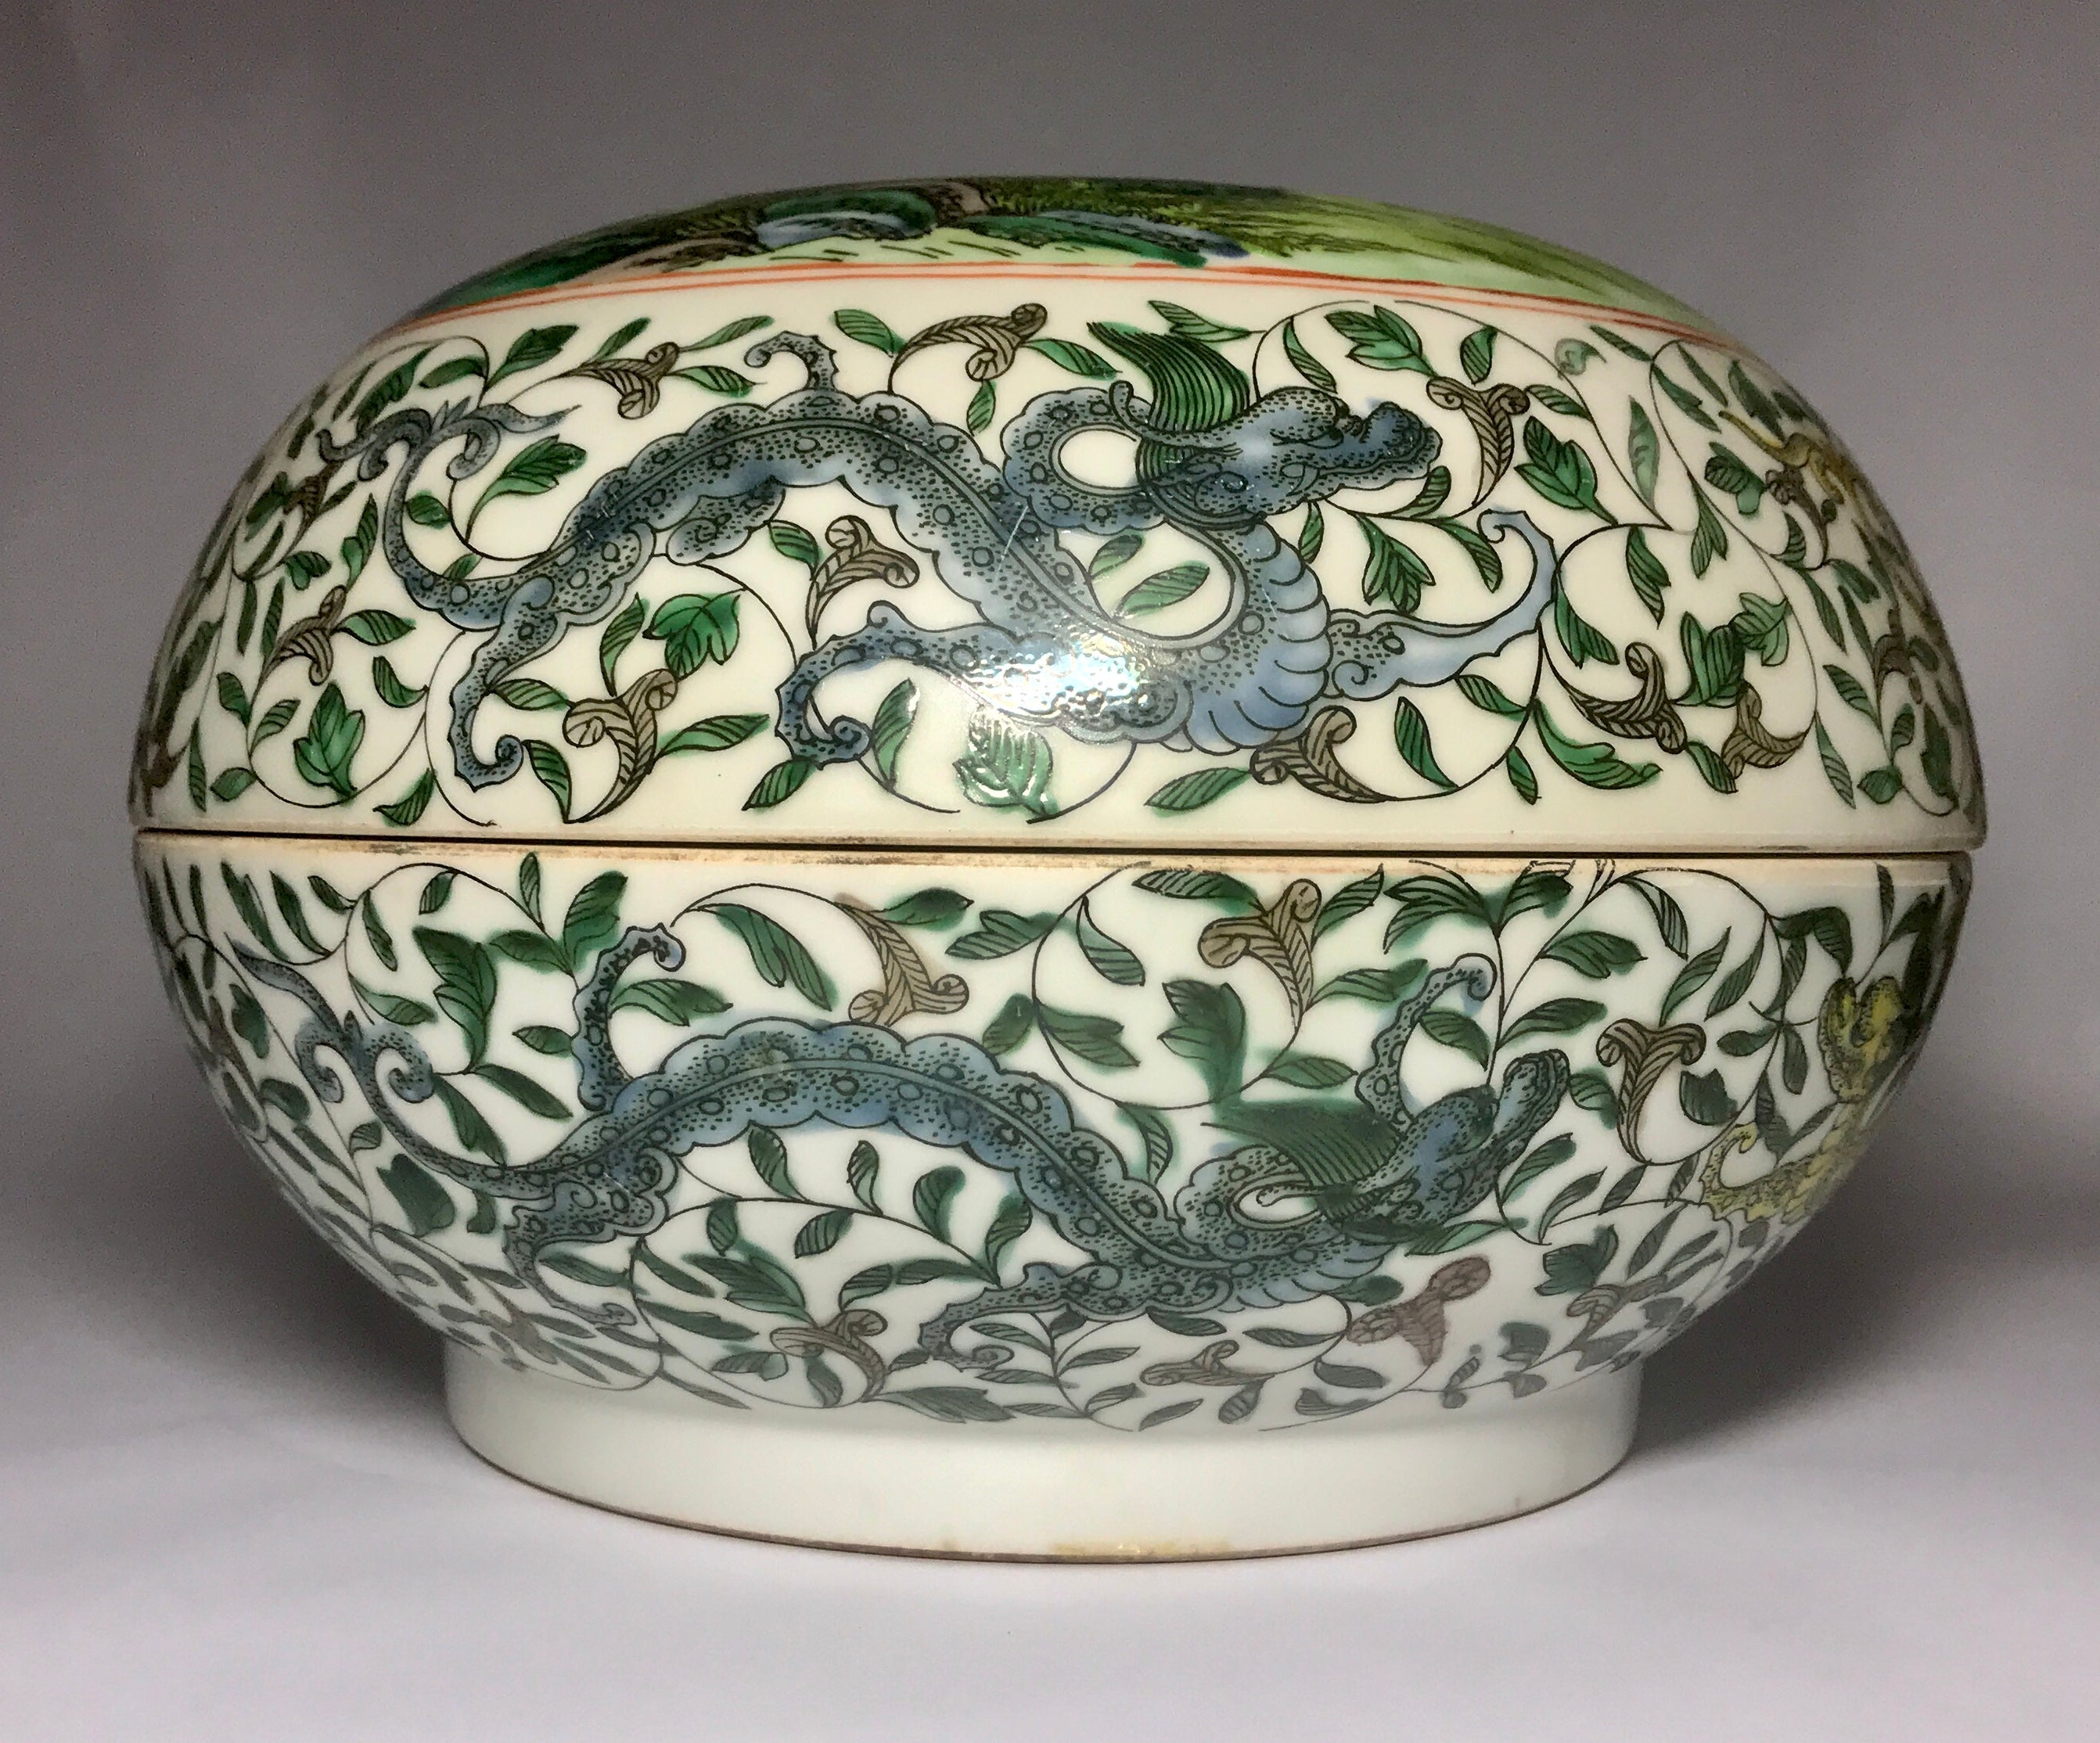 Qing Dynasty Round Box with Kangxi Mark - 10 Dynasties